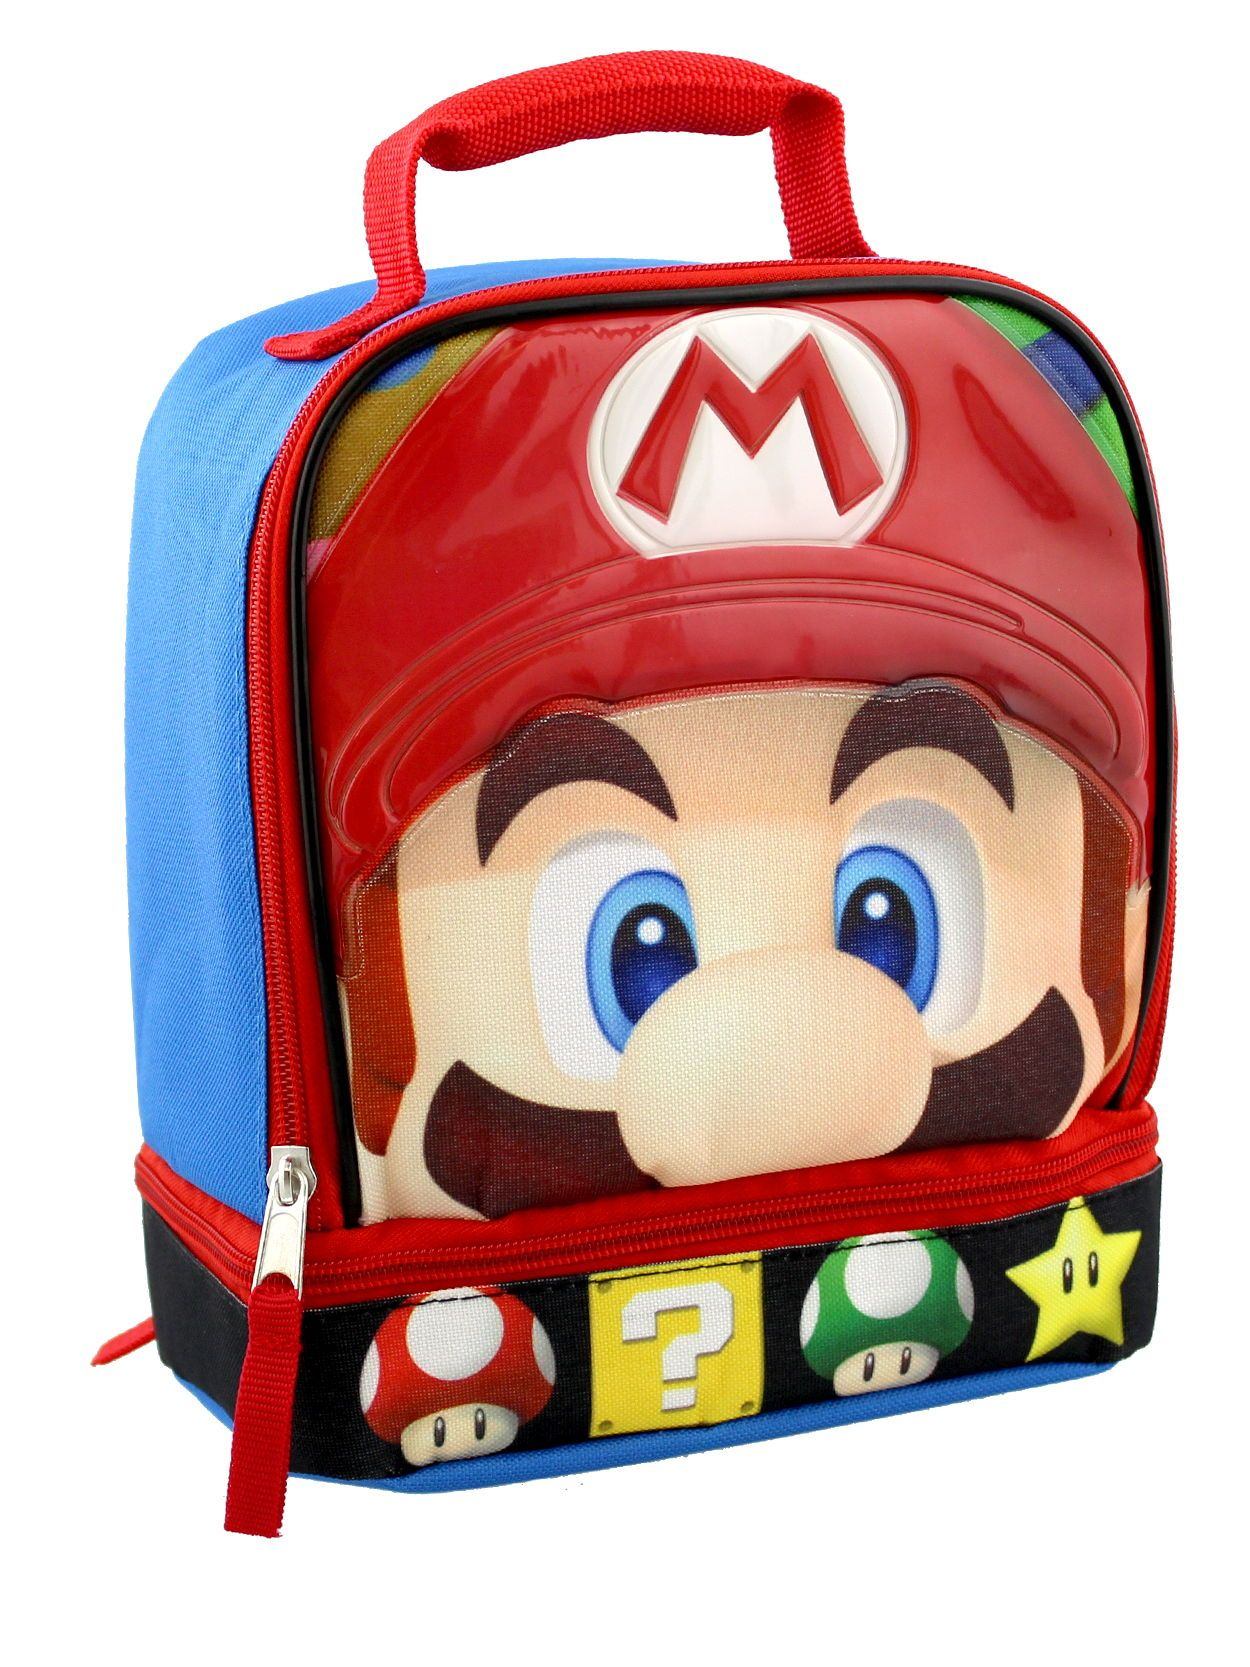 60ac3485a4 Help save Peach with this awesome Super Mario lunch box! This lunch  container is a cool way to make school lunches fun. This awesome dual  compartment soft ...